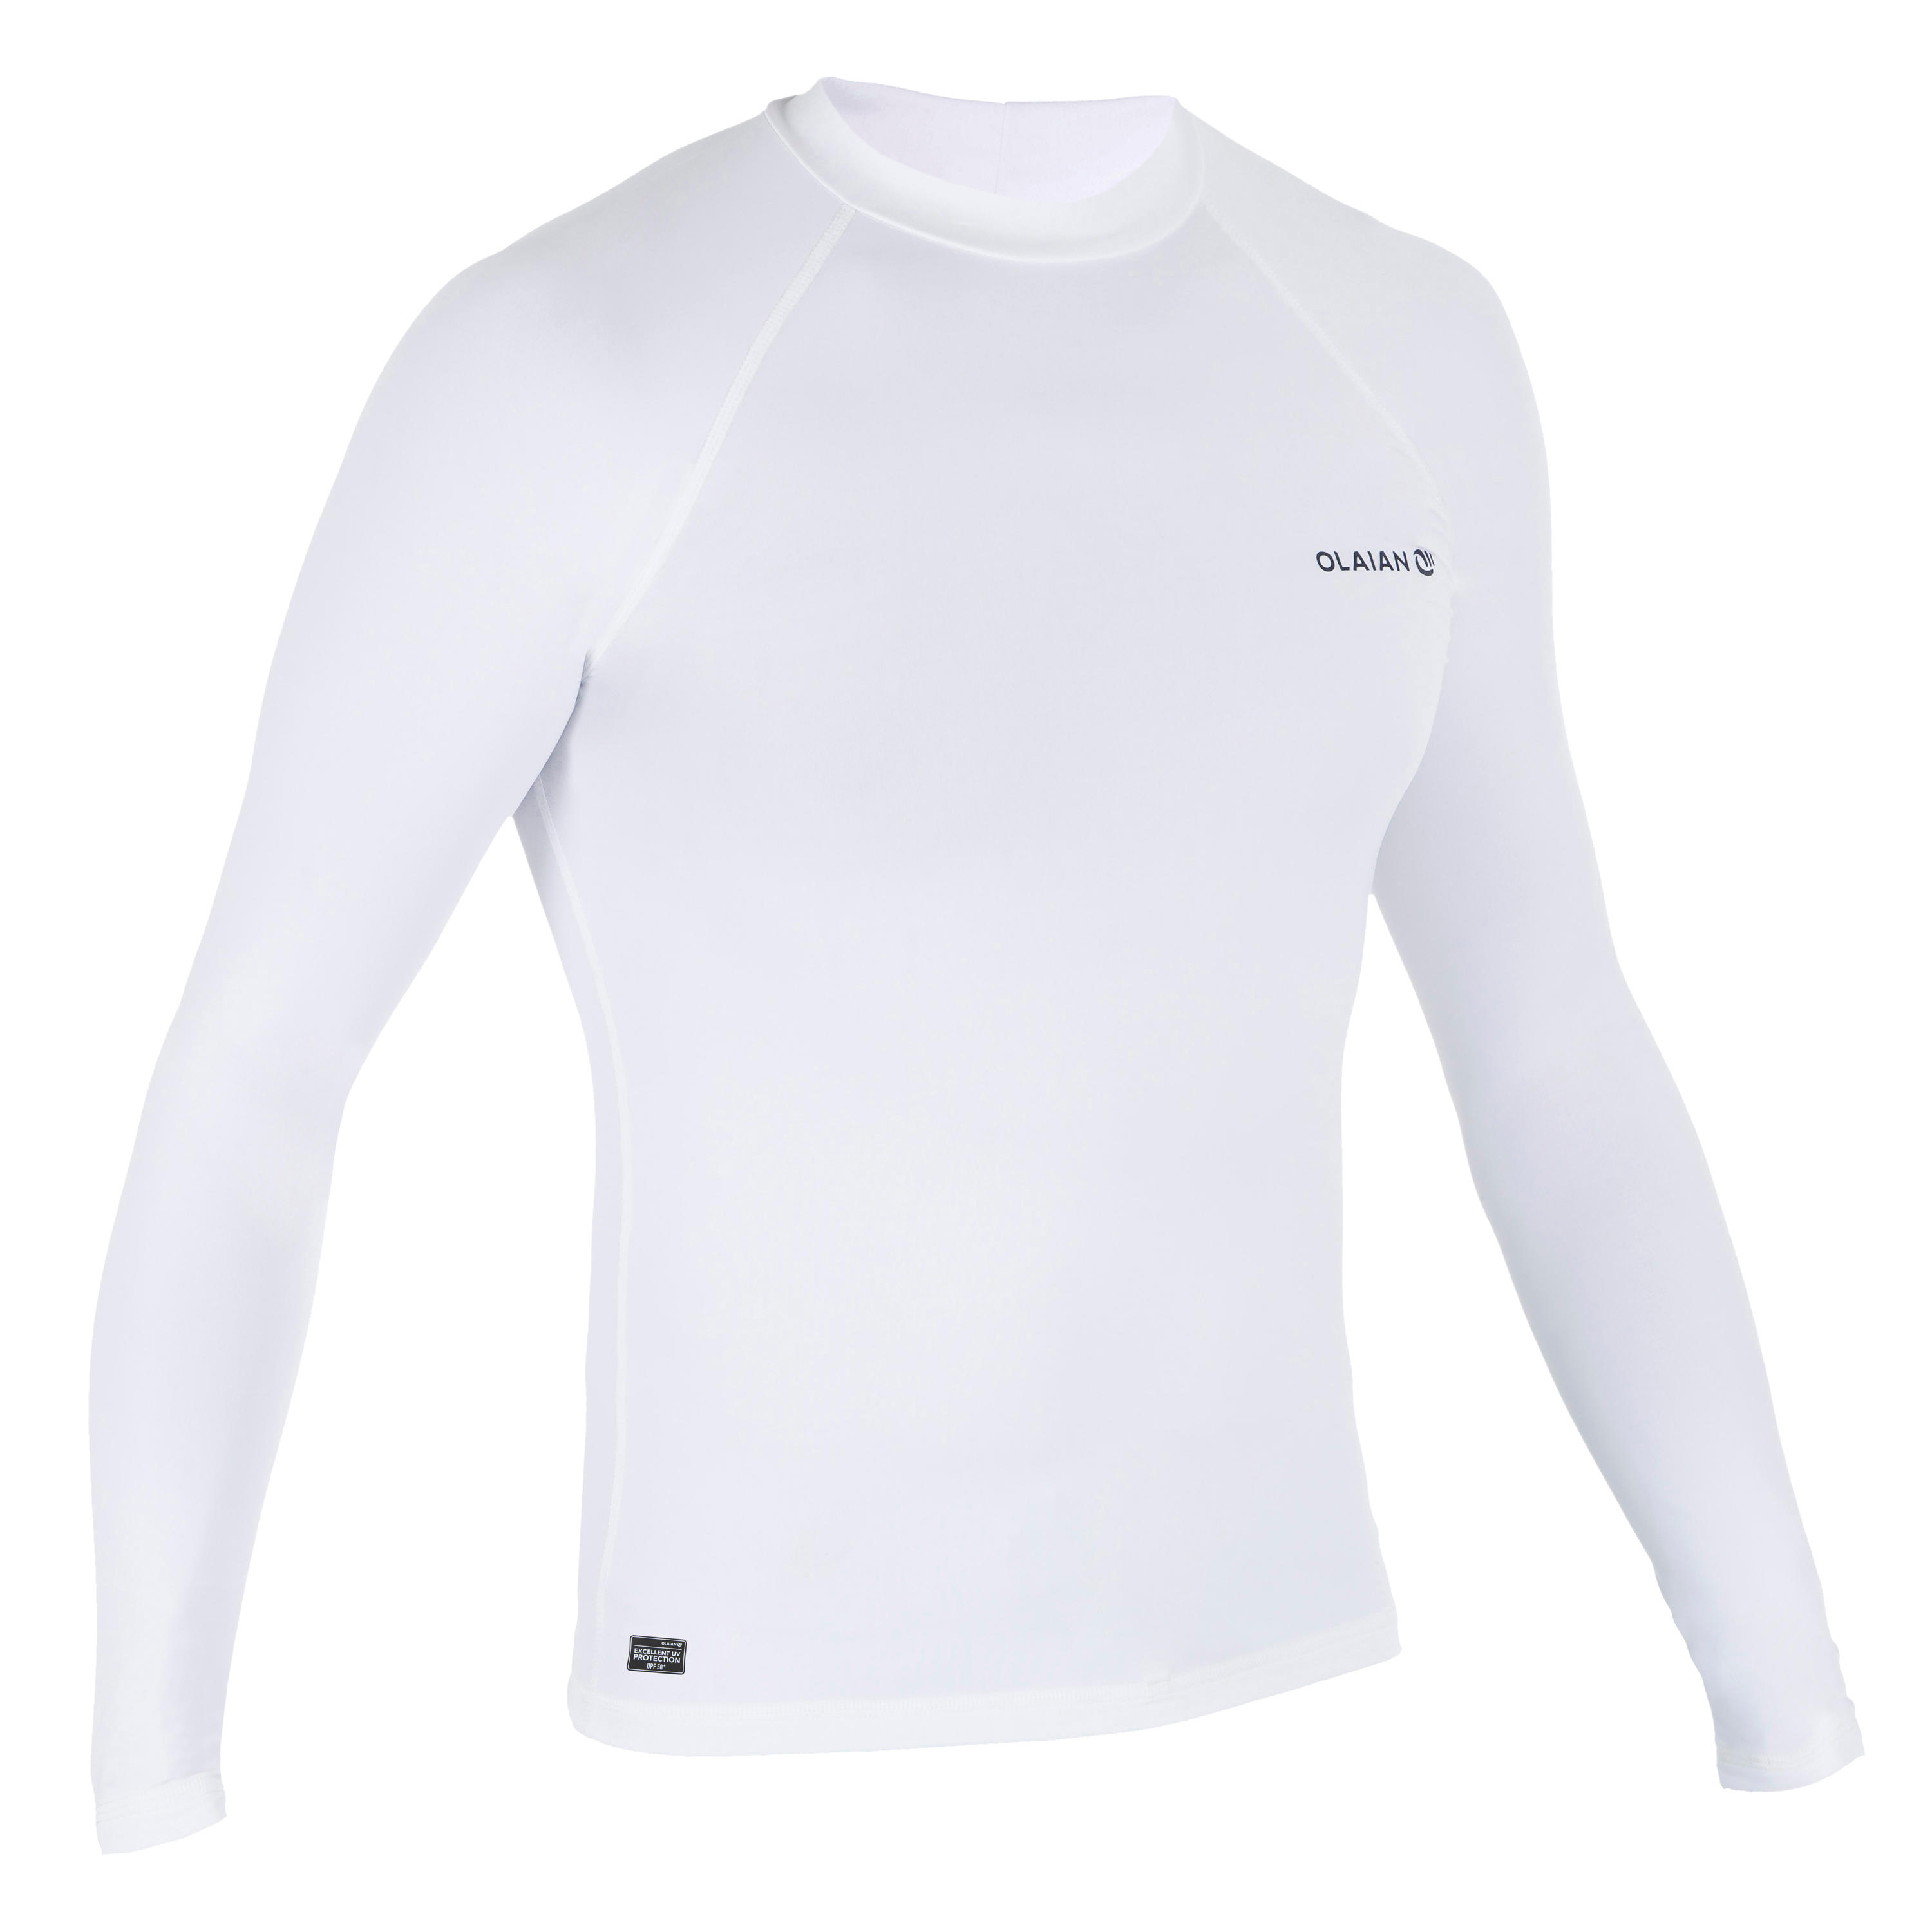 Playera de surf anti-UV Top 100 manga larga hombre Blanco